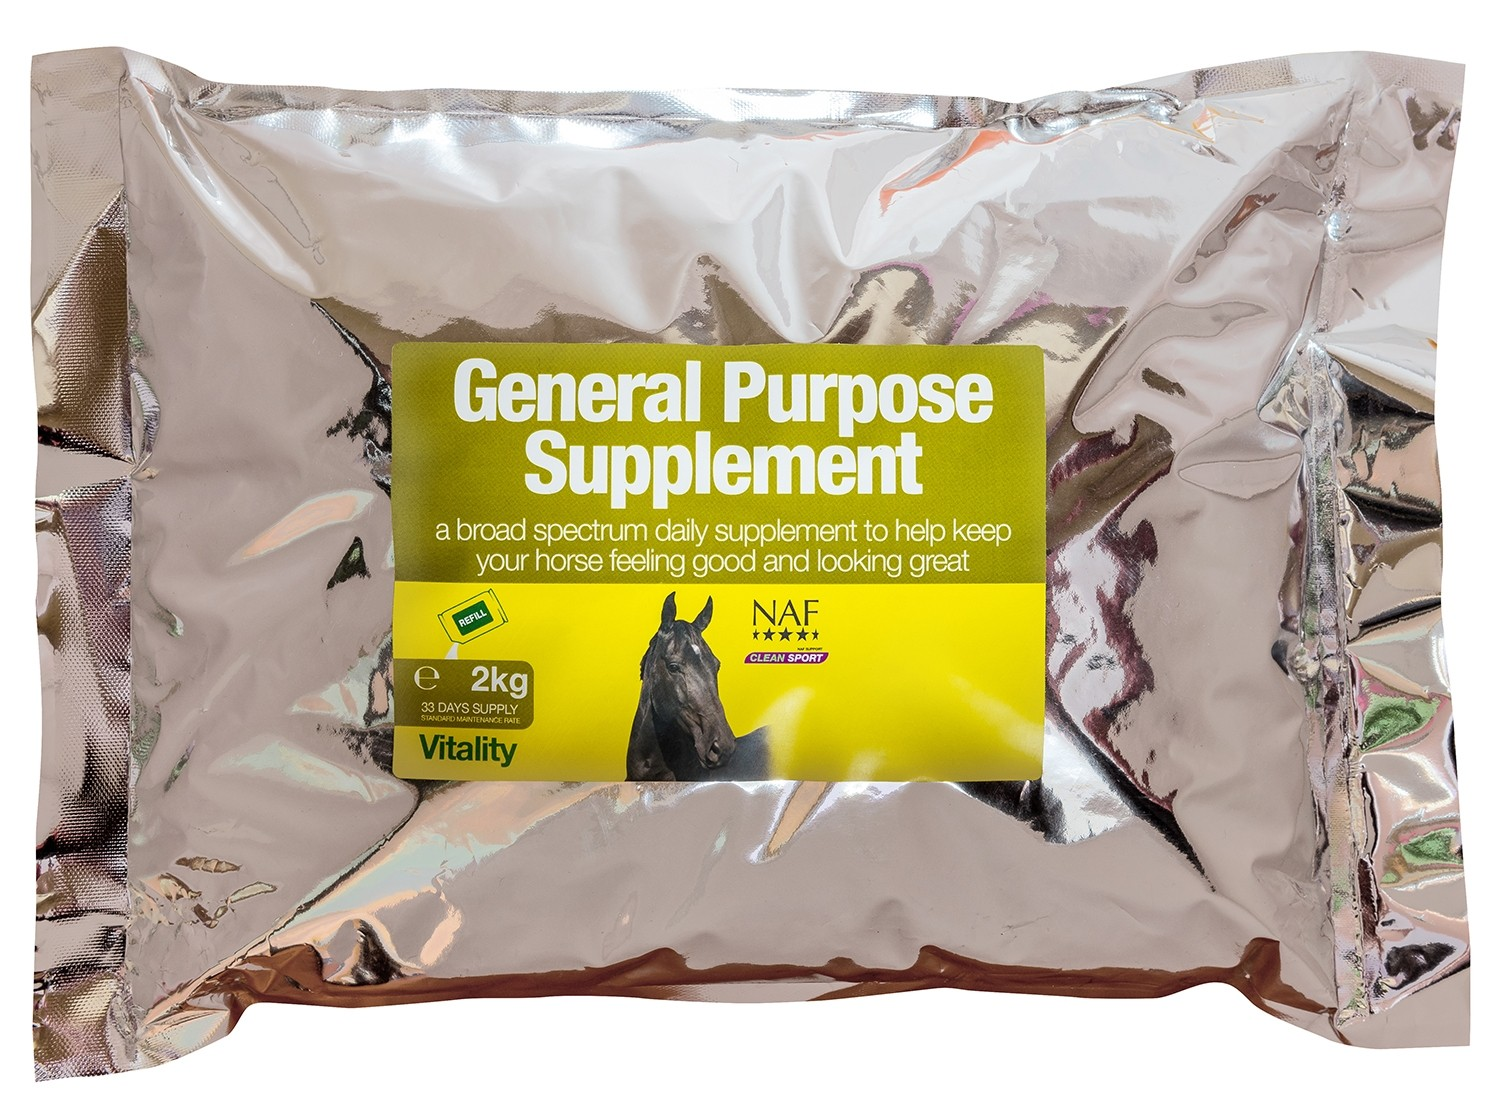 NAF General Purpose Supplement Refill  - Thomas Irving's equestrian and accessories store  NAF General Purpose Supplement Refill